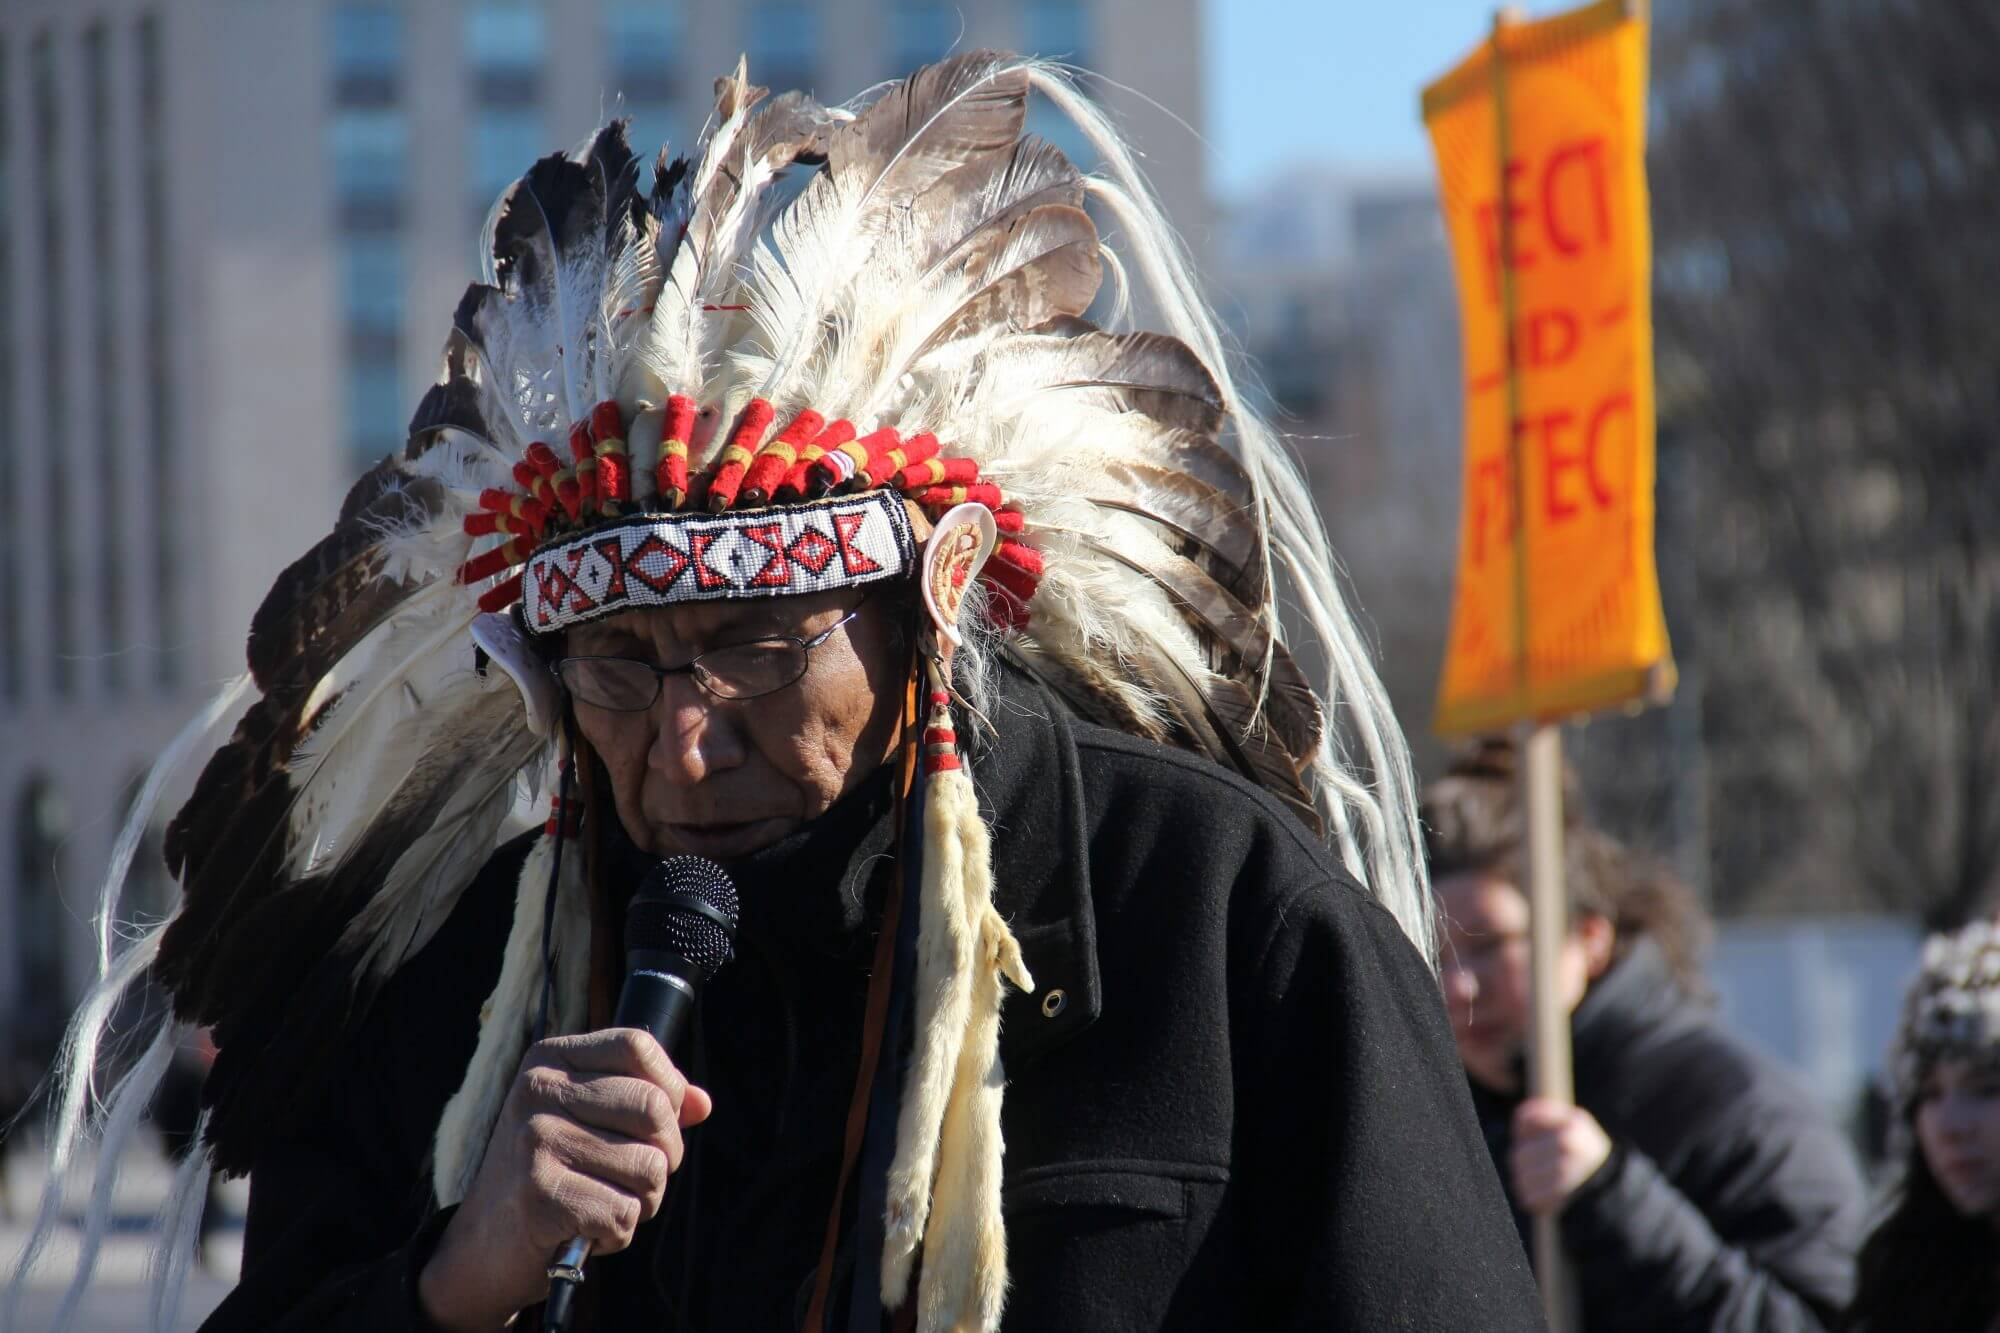 Faith leaders, activists protest Keystone pipeline outside White House